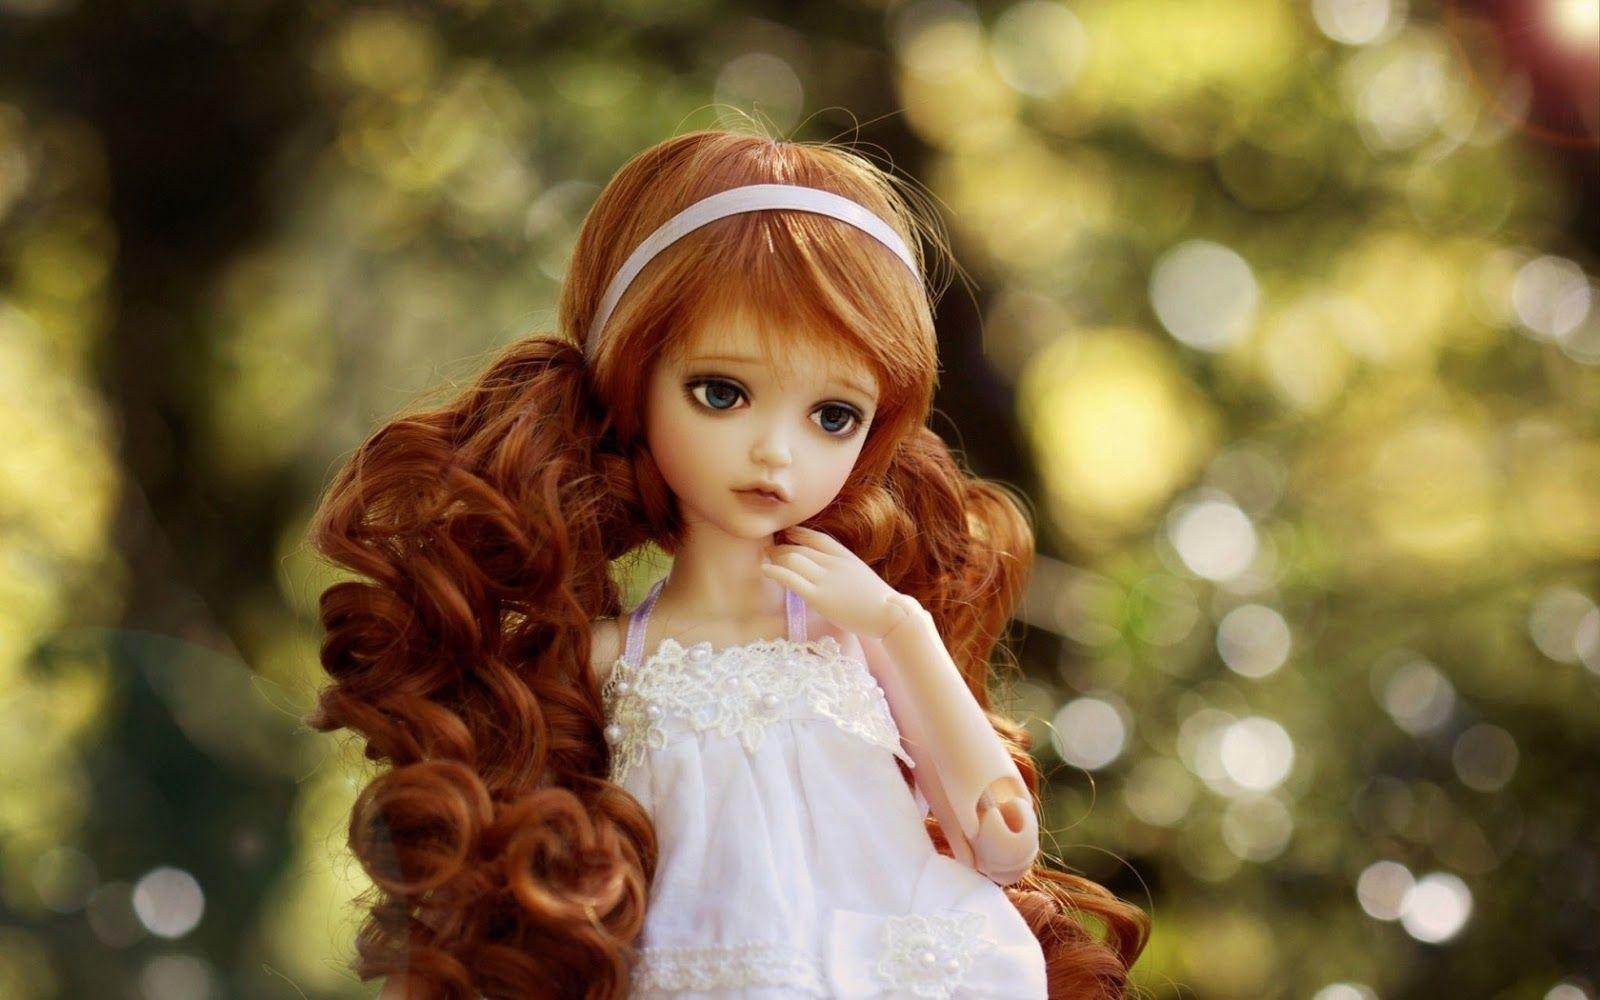 Cute Sad Wallpapers For Barbie Girl Barbie Dolls